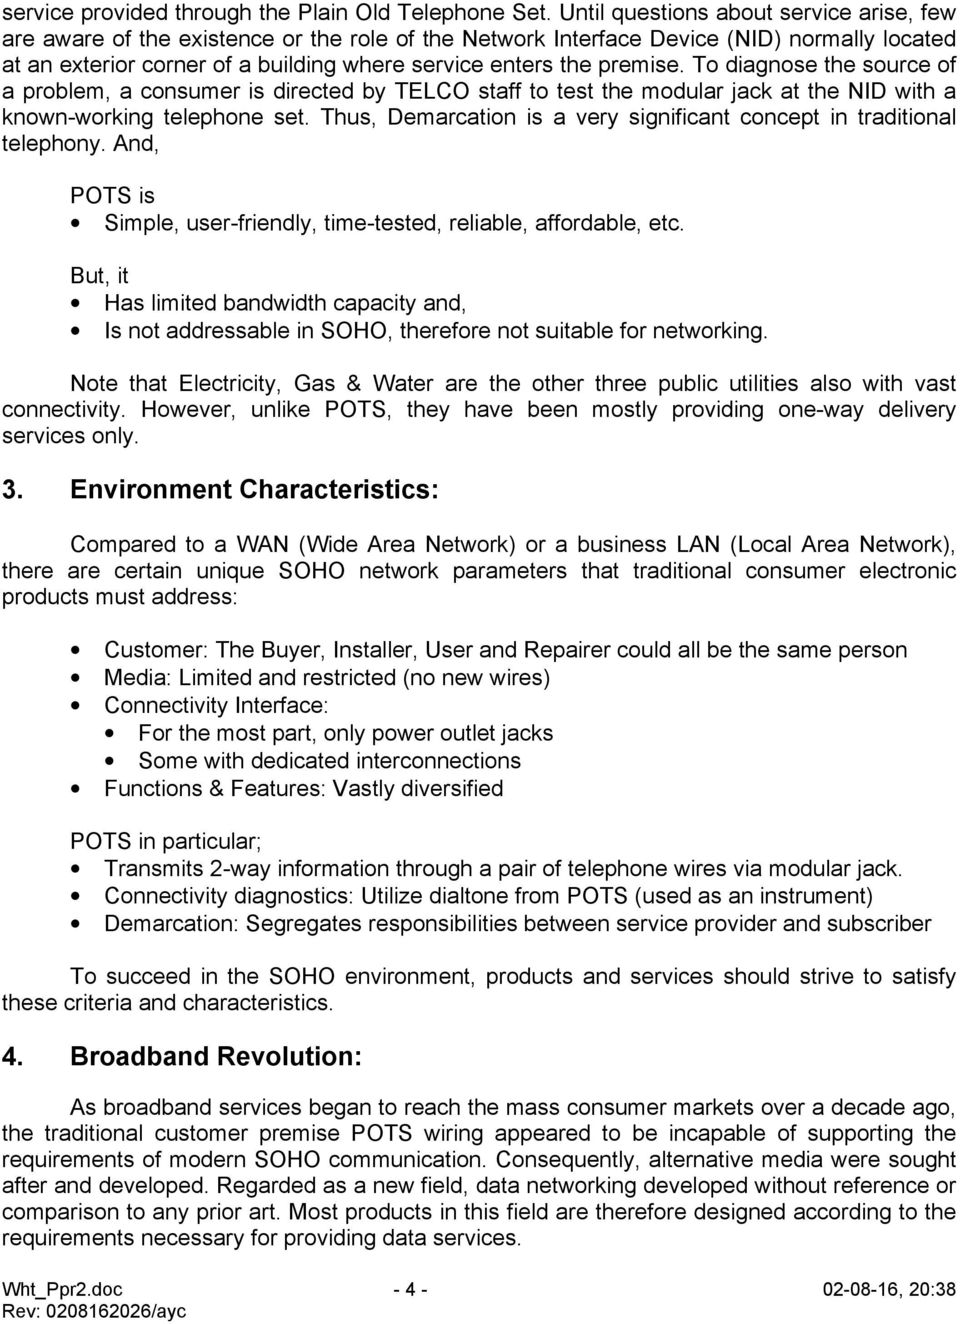 Avinta Communications Inc Soho Residential Networking Myth Poweroverethernet Poe On Industrialbased Fig 2 Premise To Diagnose The Source Of A Problem Consumer Is Directed By Telco